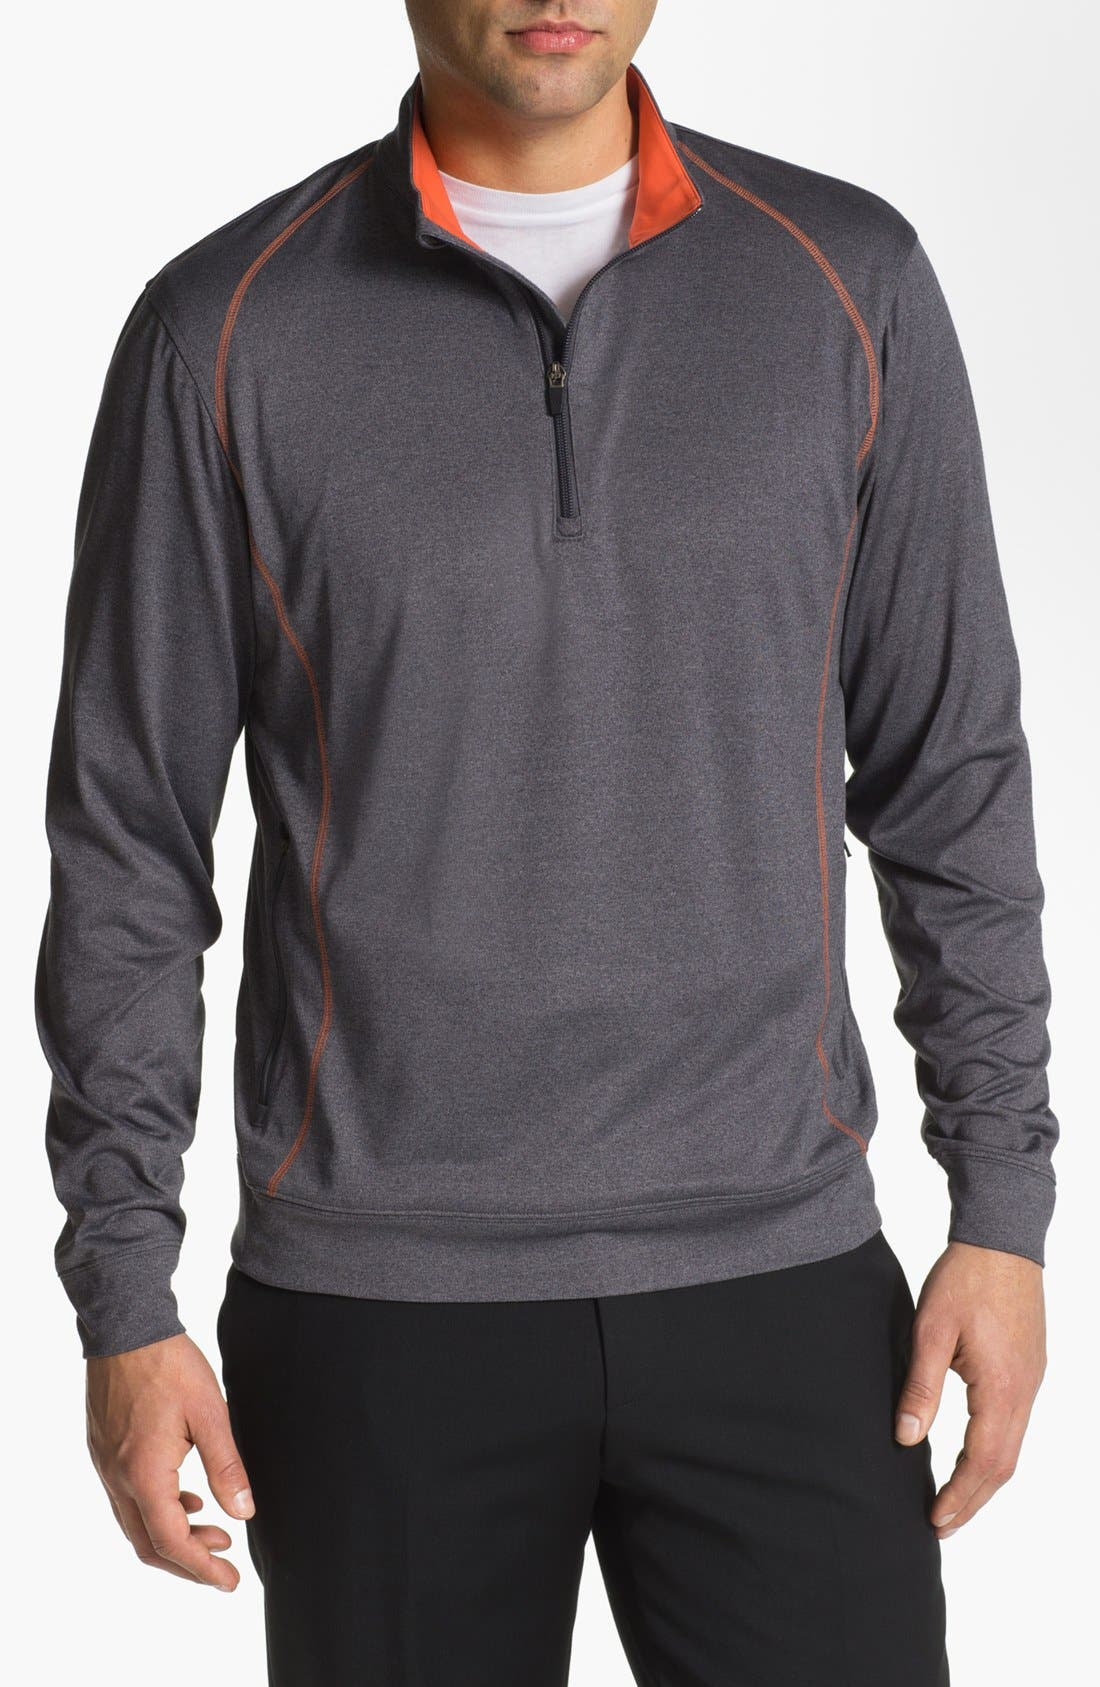 Alternate Image 1 Selected - Cutter & Buck 'Front Nines' DryTec Quarter Zip Fleece